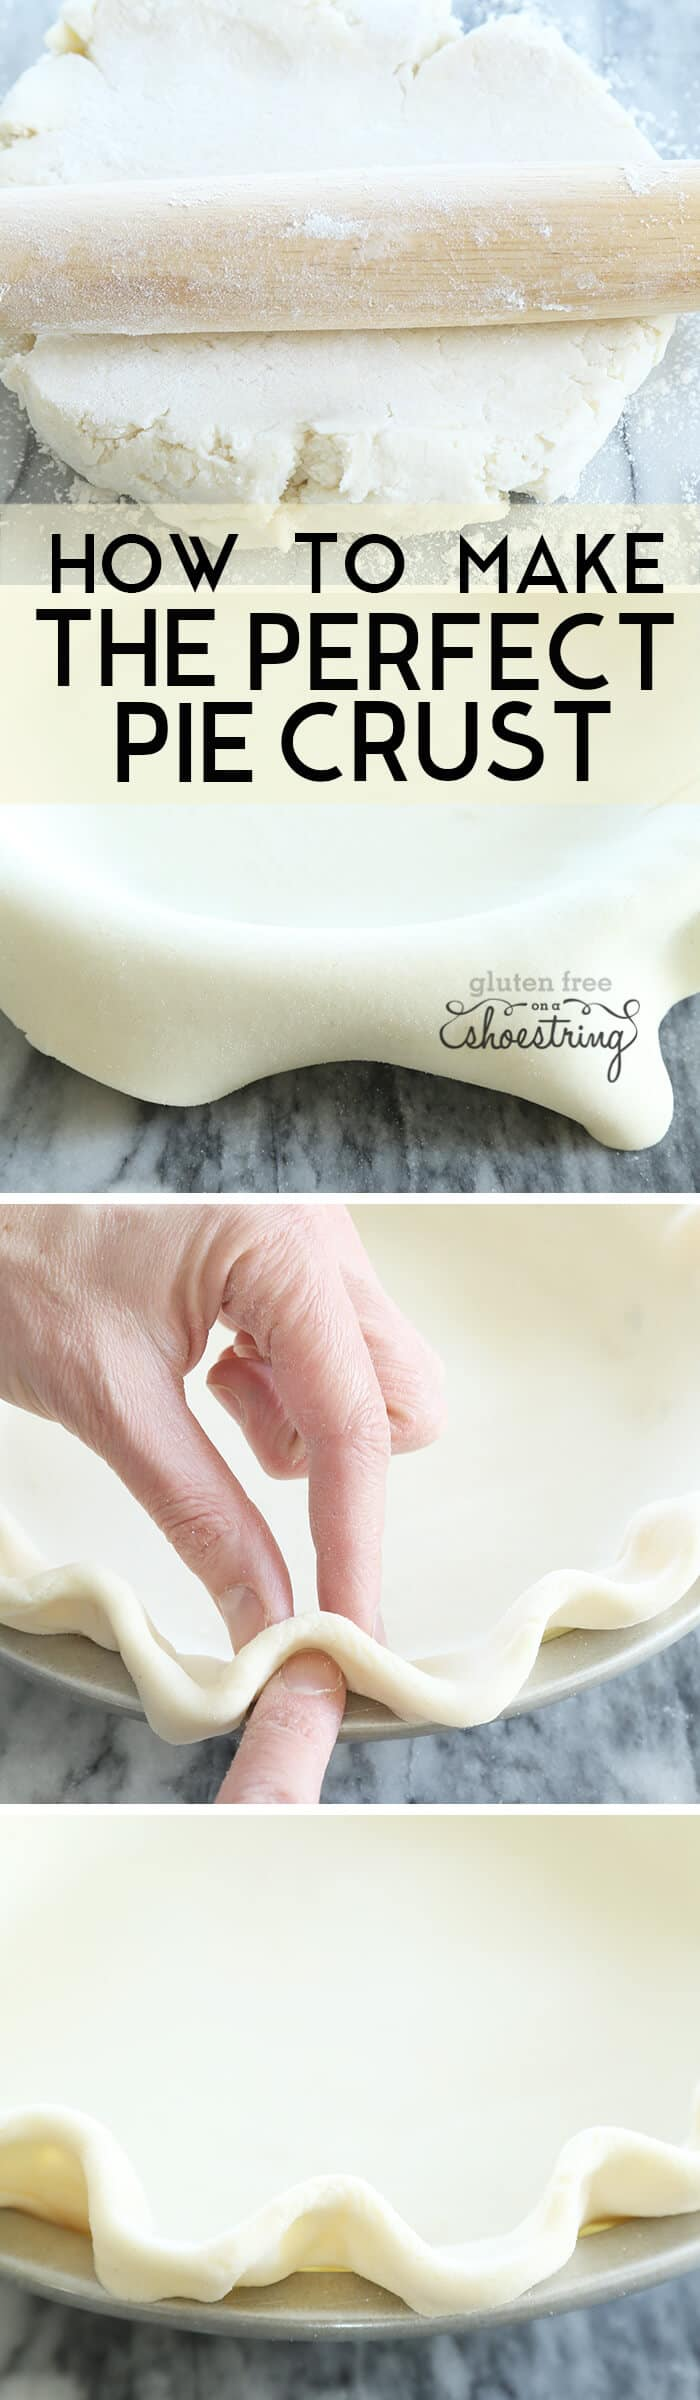 Pie curst on pie plate and pie crust being molded